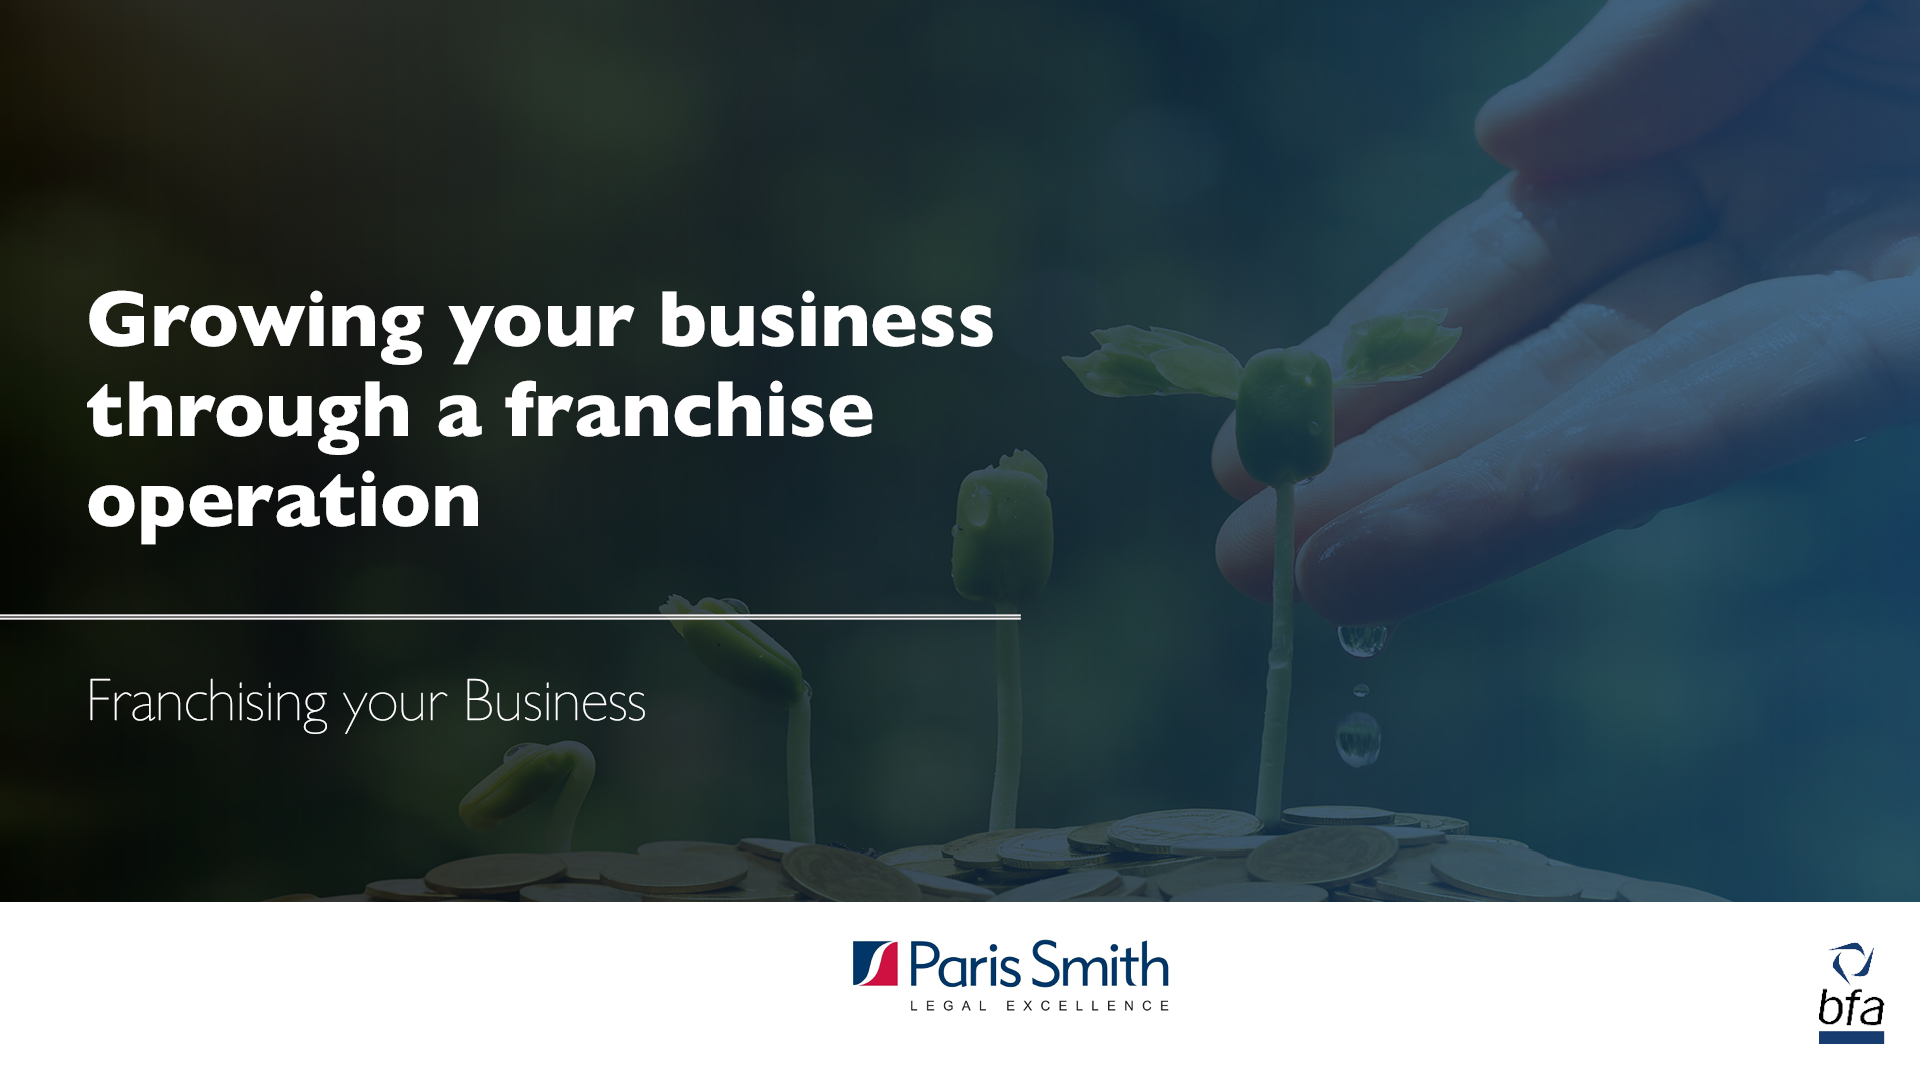 Growing your business through a franchise operation